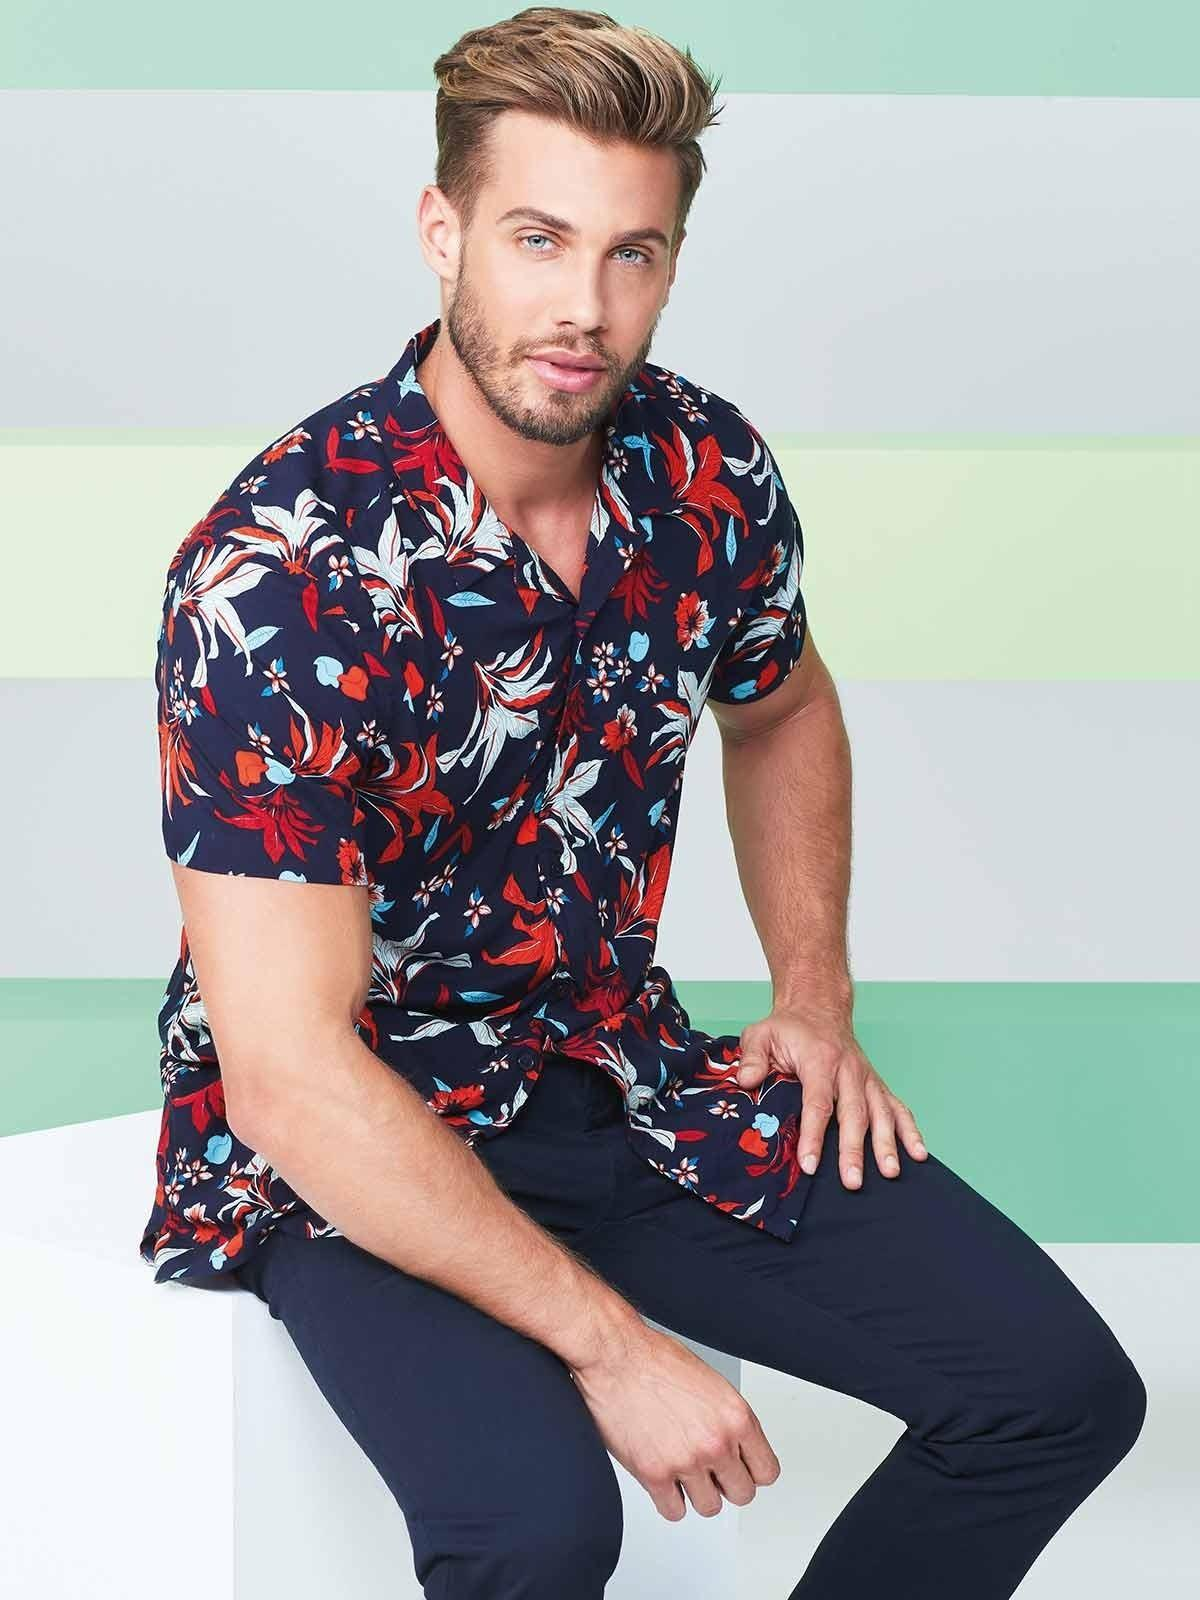 This navy shirt with red floral accents is a steal- a tropical print will definitely get you into the holiday spirit!